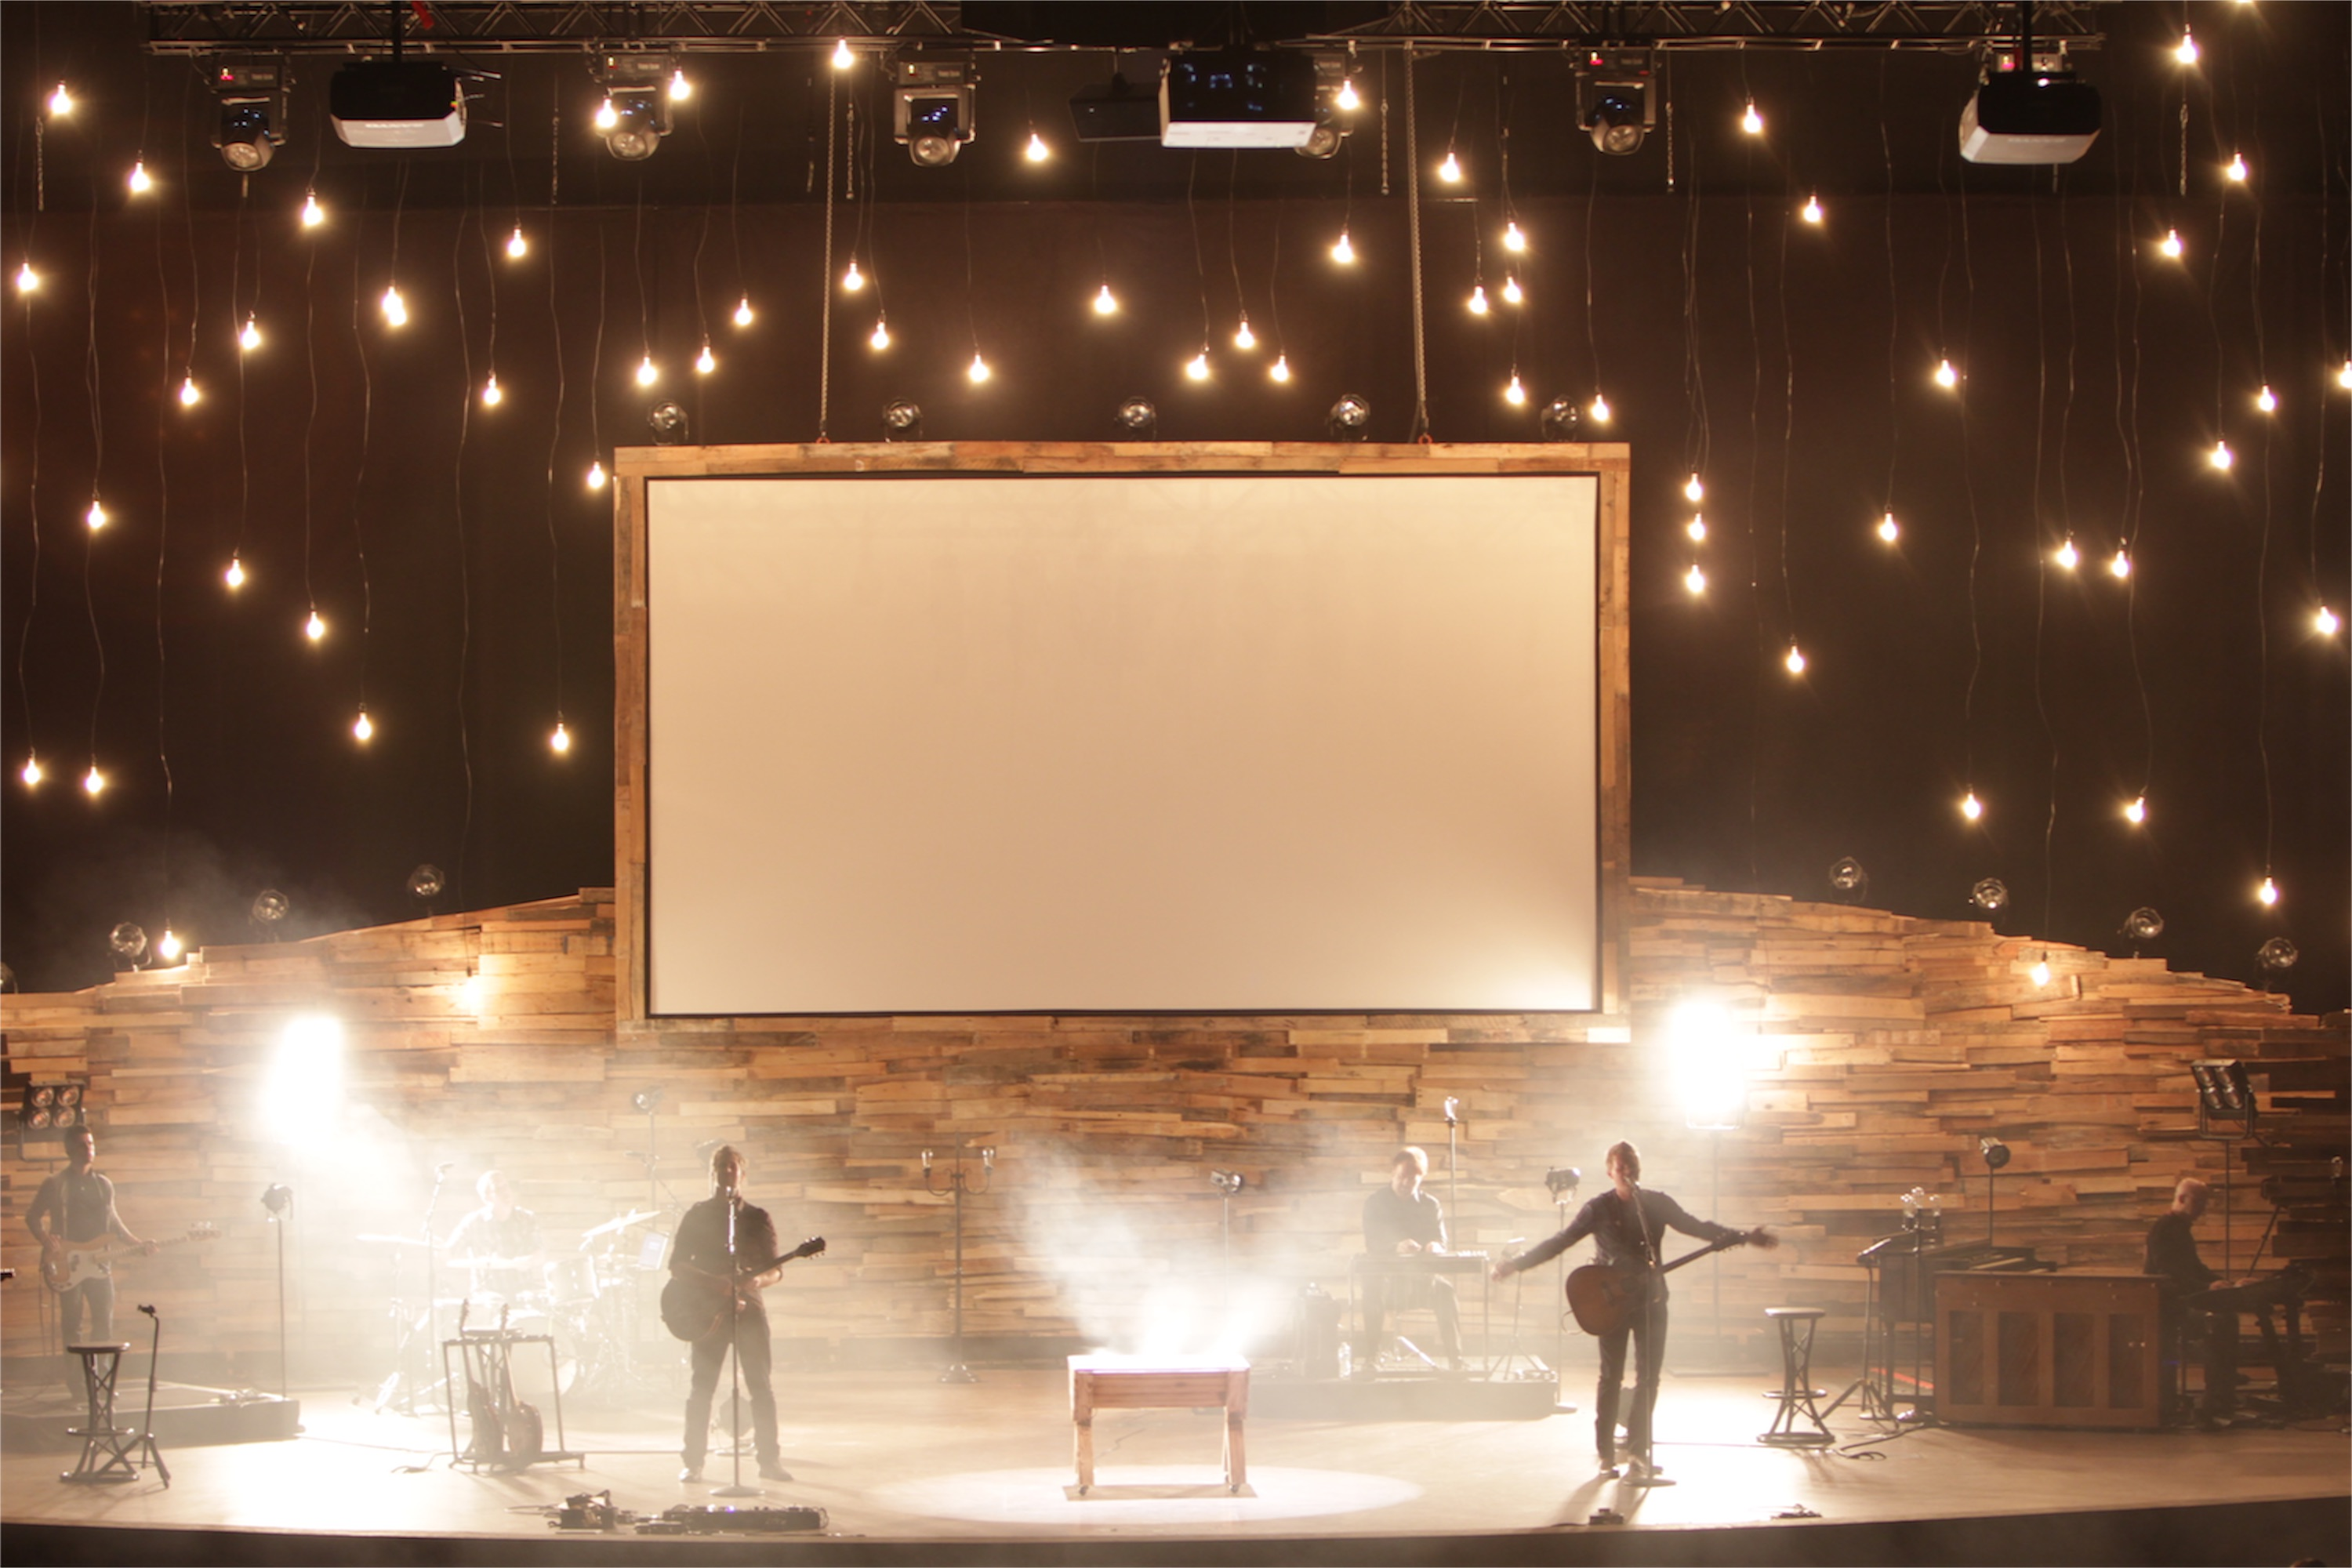 repurposed wood pallets for church worship stage wall lighting reclaimed walls and screens louisville decorative outdoor adds mystique